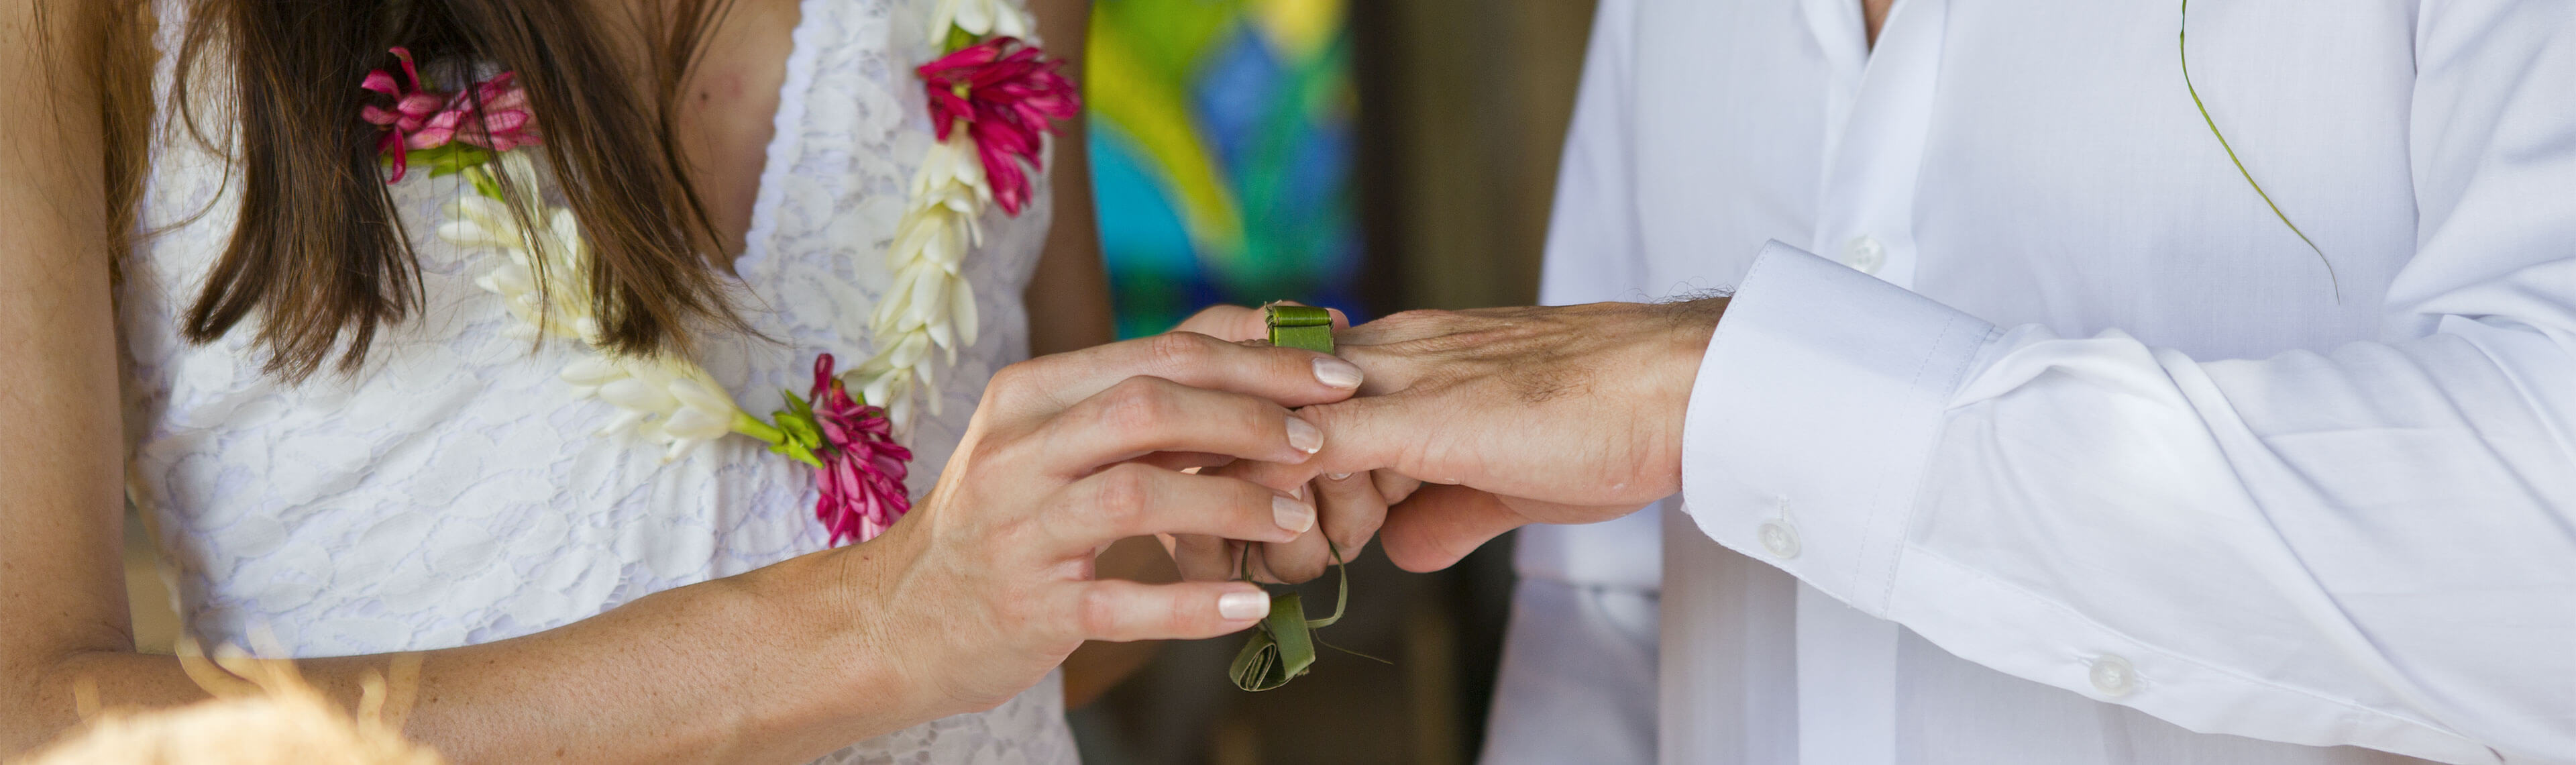 bora bora wedding